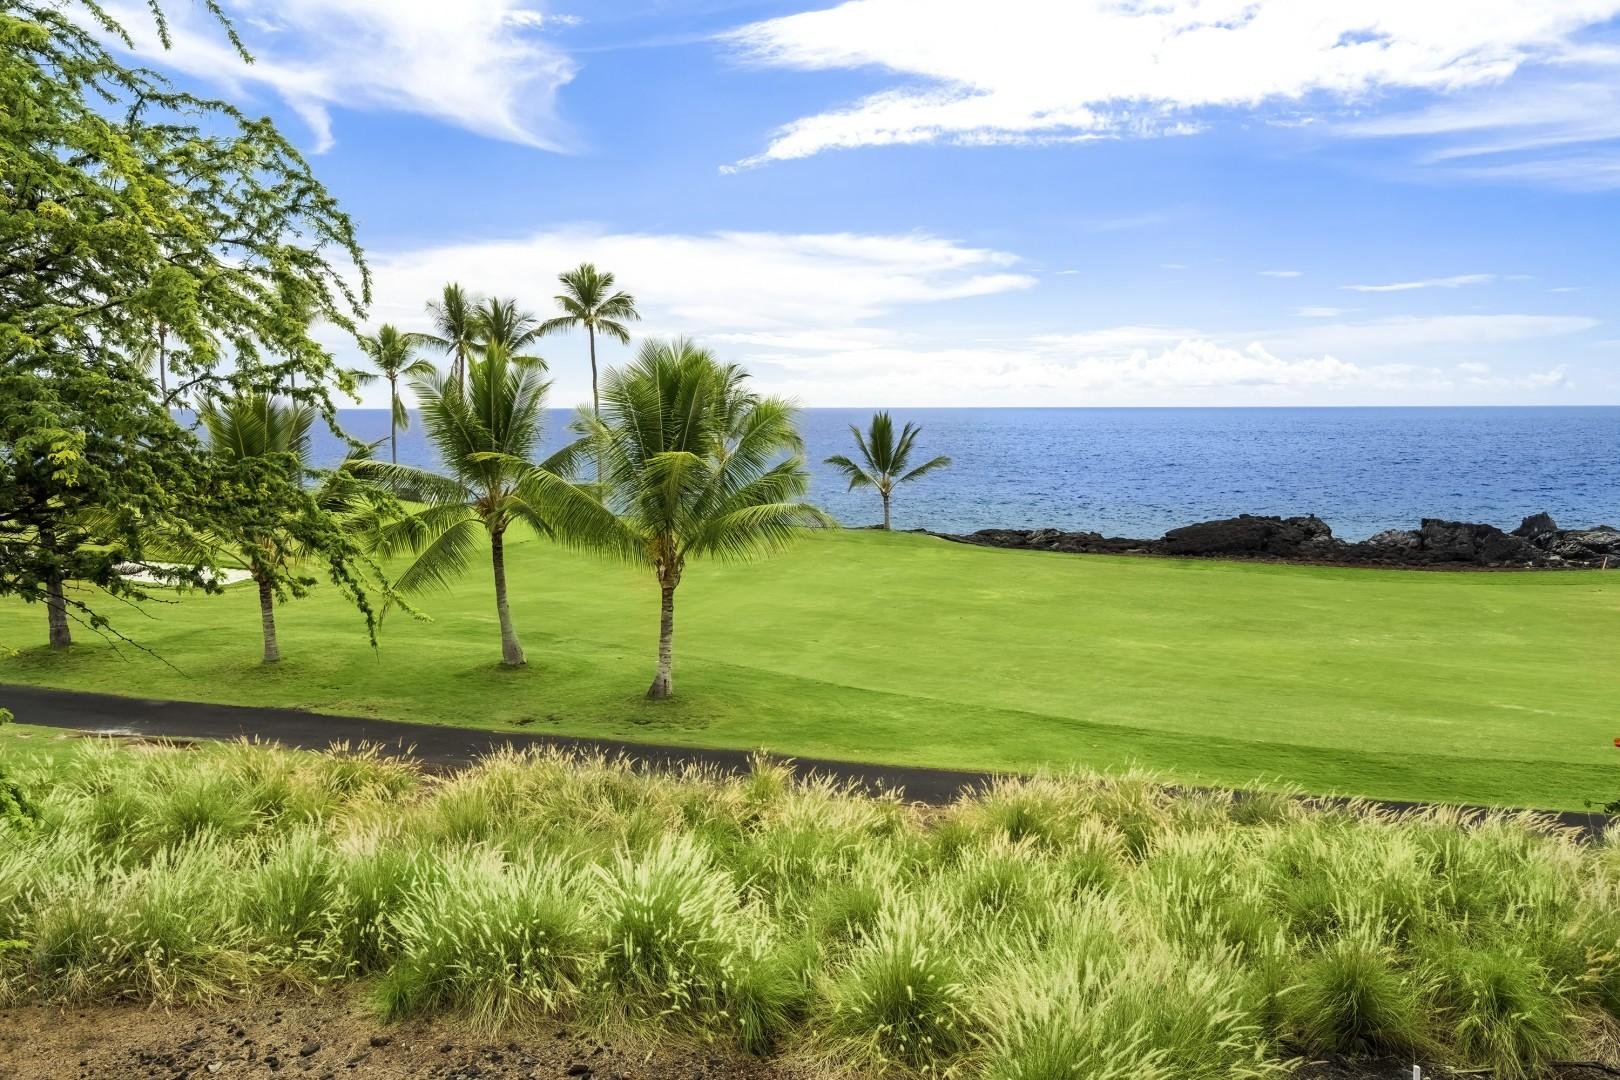 Take your shot at the Kona Country Club golf course!